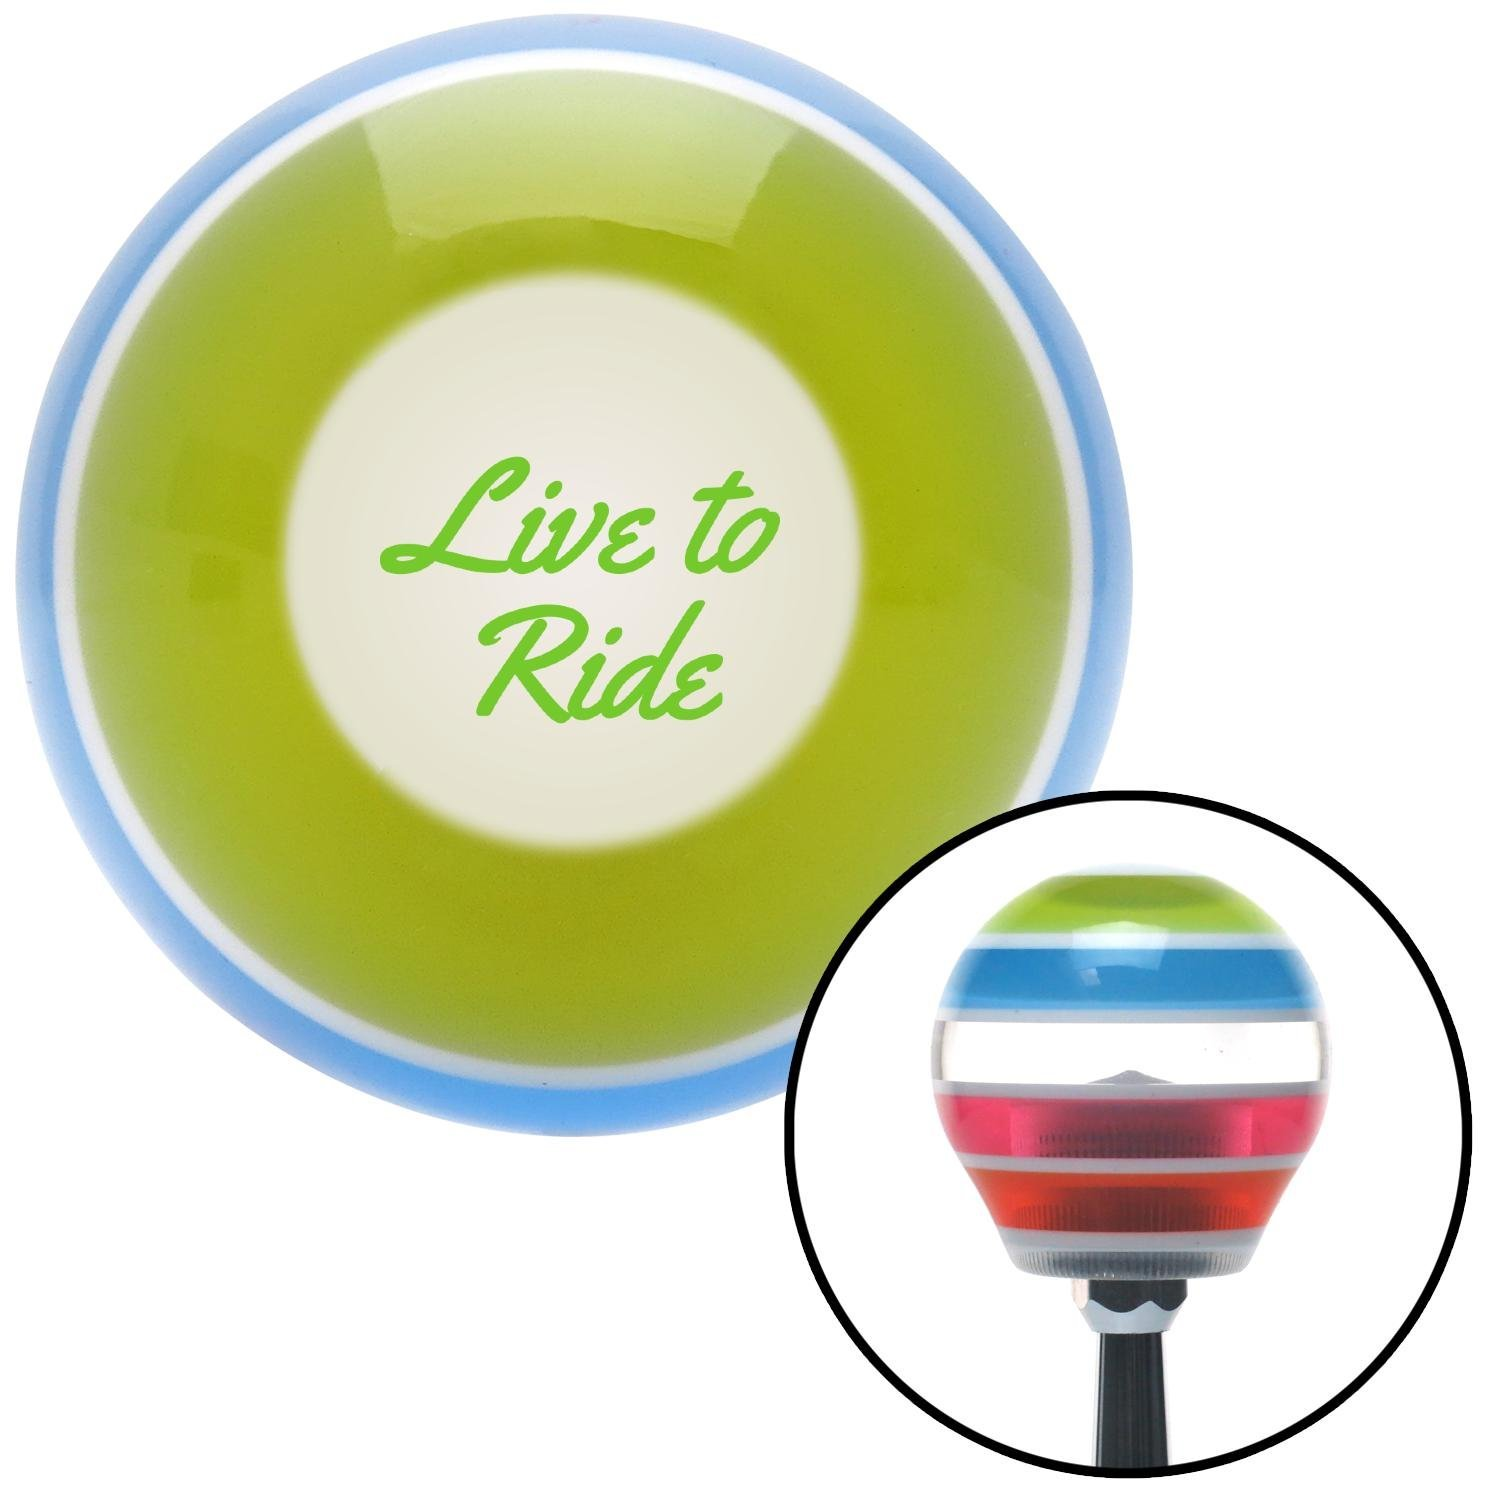 American Shifter 272650 Green Live to Ride Stripe Shift Knob with M16 x 1.5 Insert